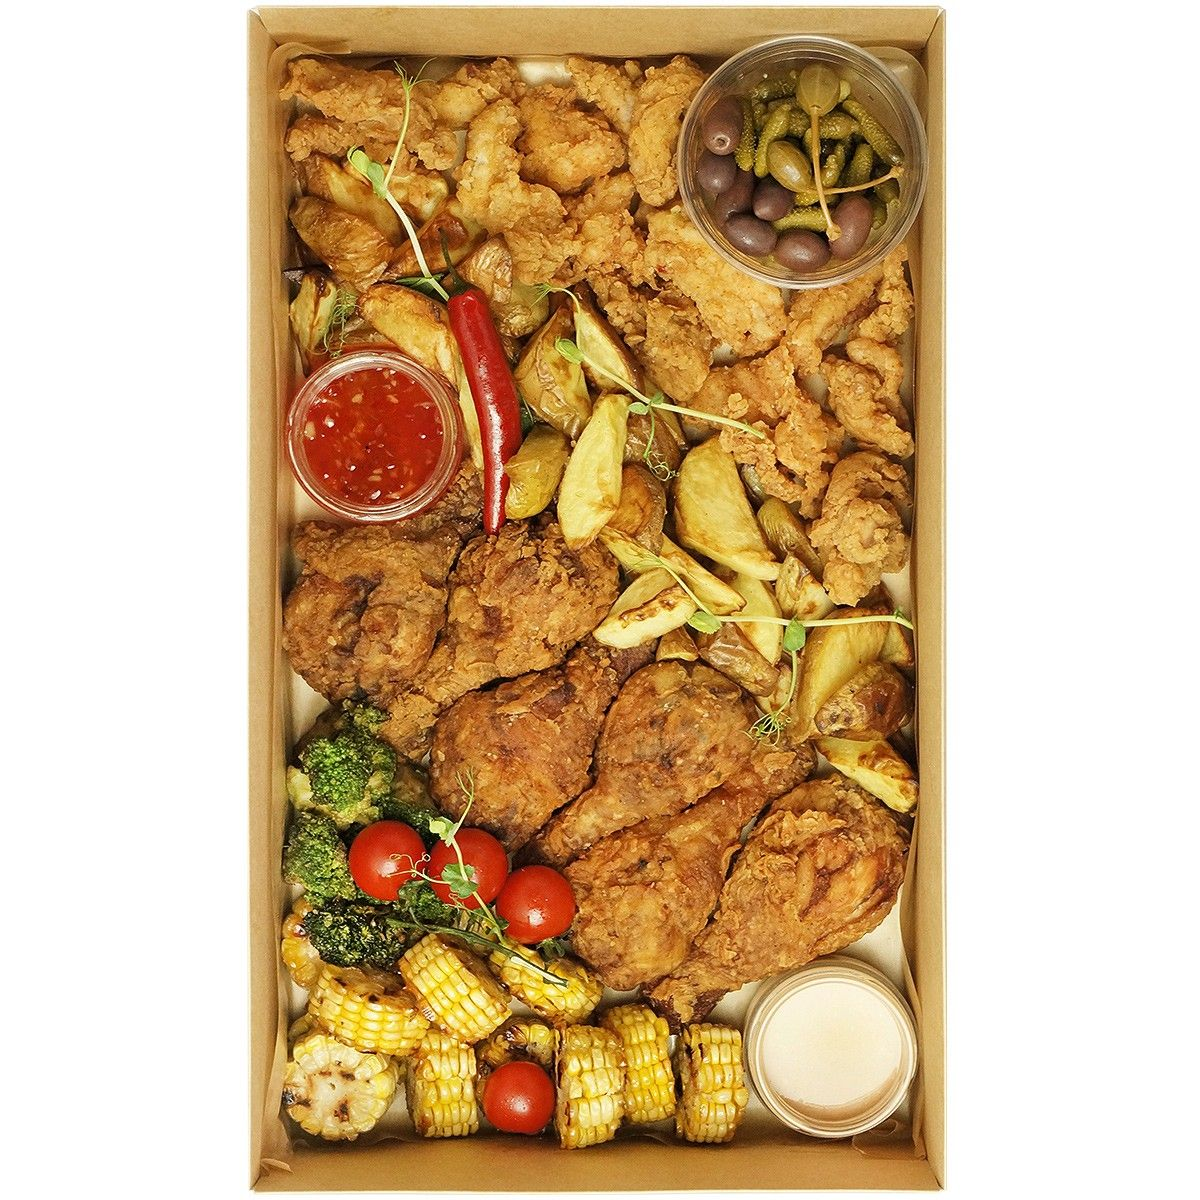 Fried chicken big box: 999 грн. фото 4